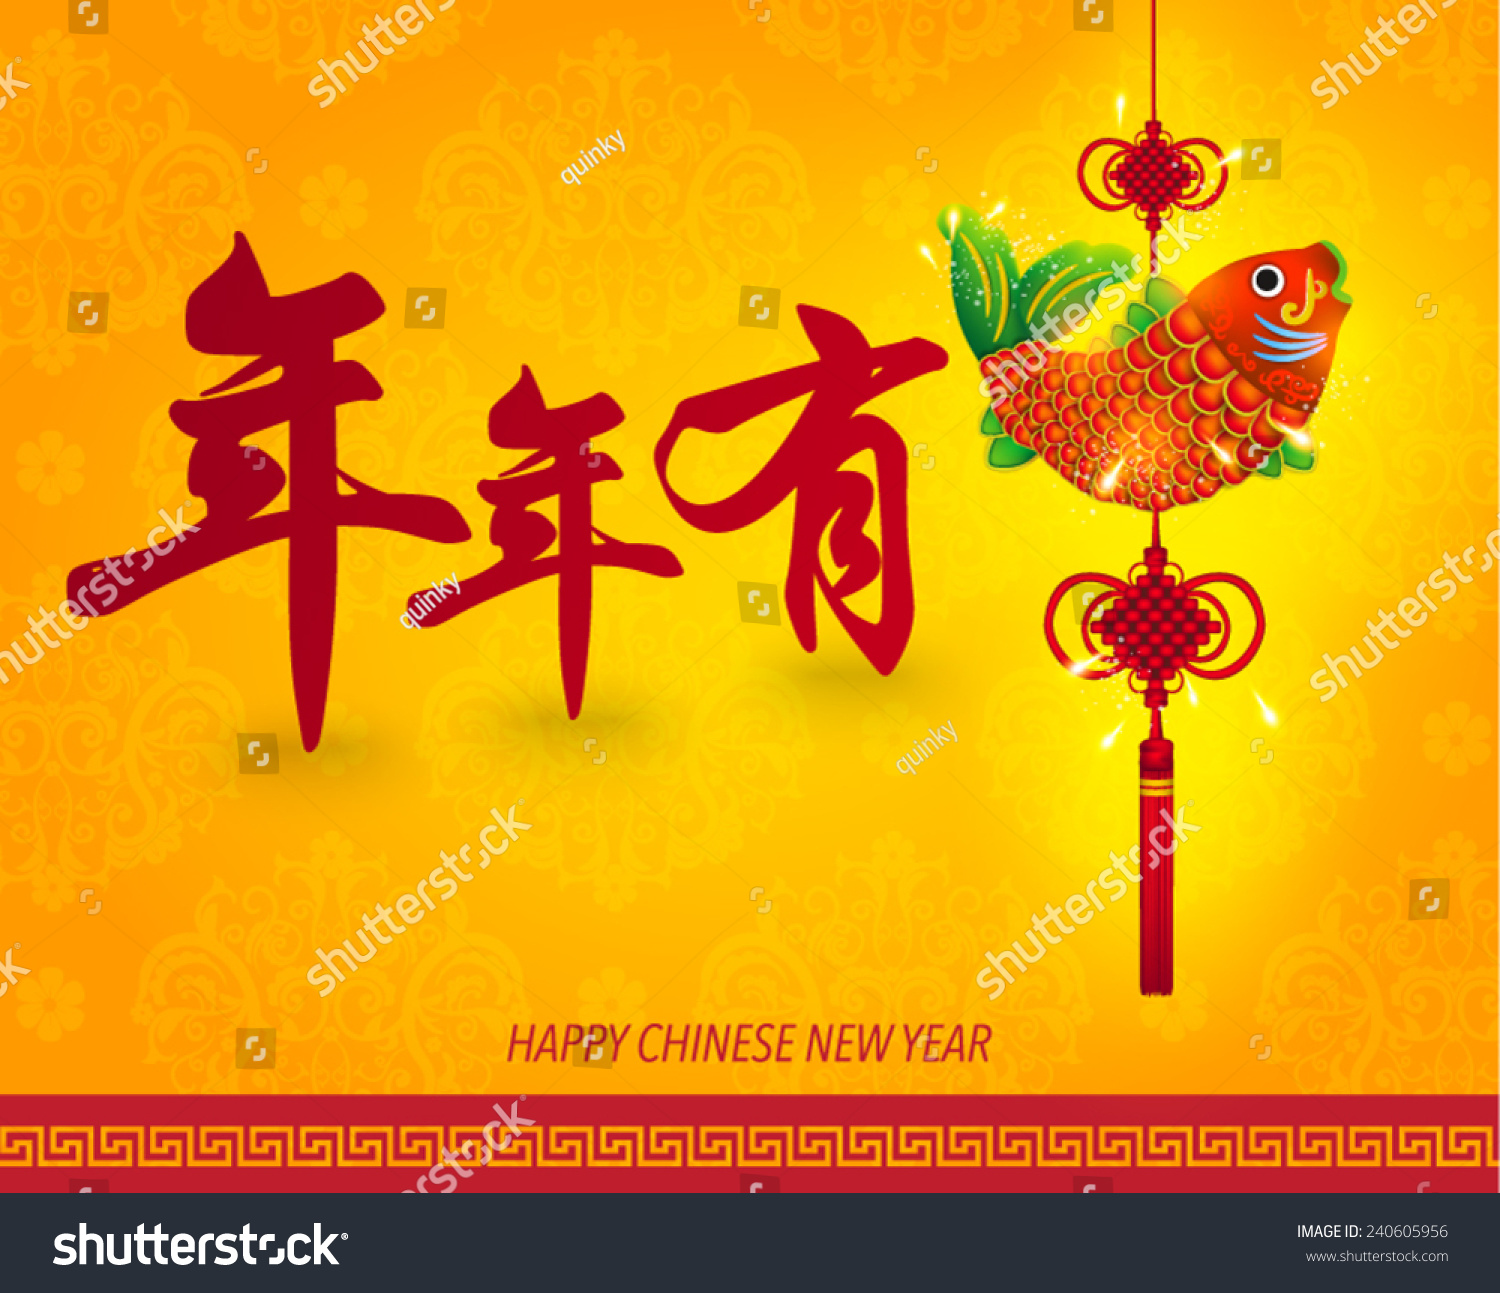 happy chinese new year greetings vector design chinese translation wishing you good luck in new year ez canvas